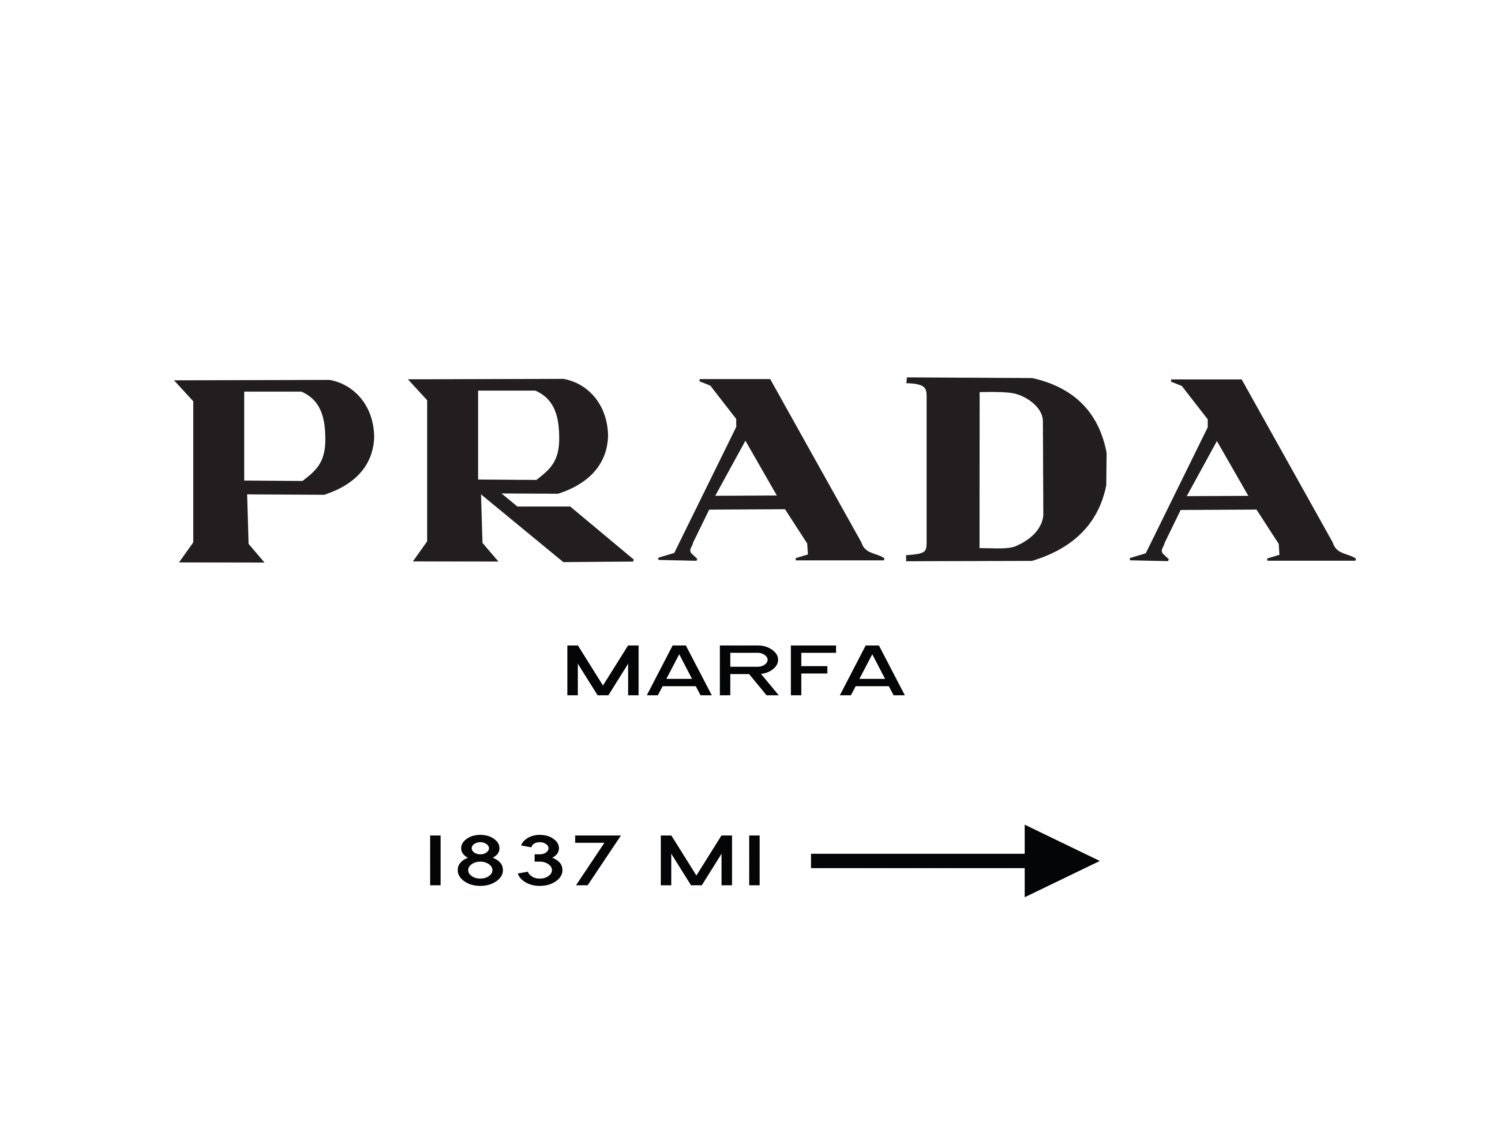 prada marfa inspired poster 40x30 inches mult by stylecorner. Black Bedroom Furniture Sets. Home Design Ideas